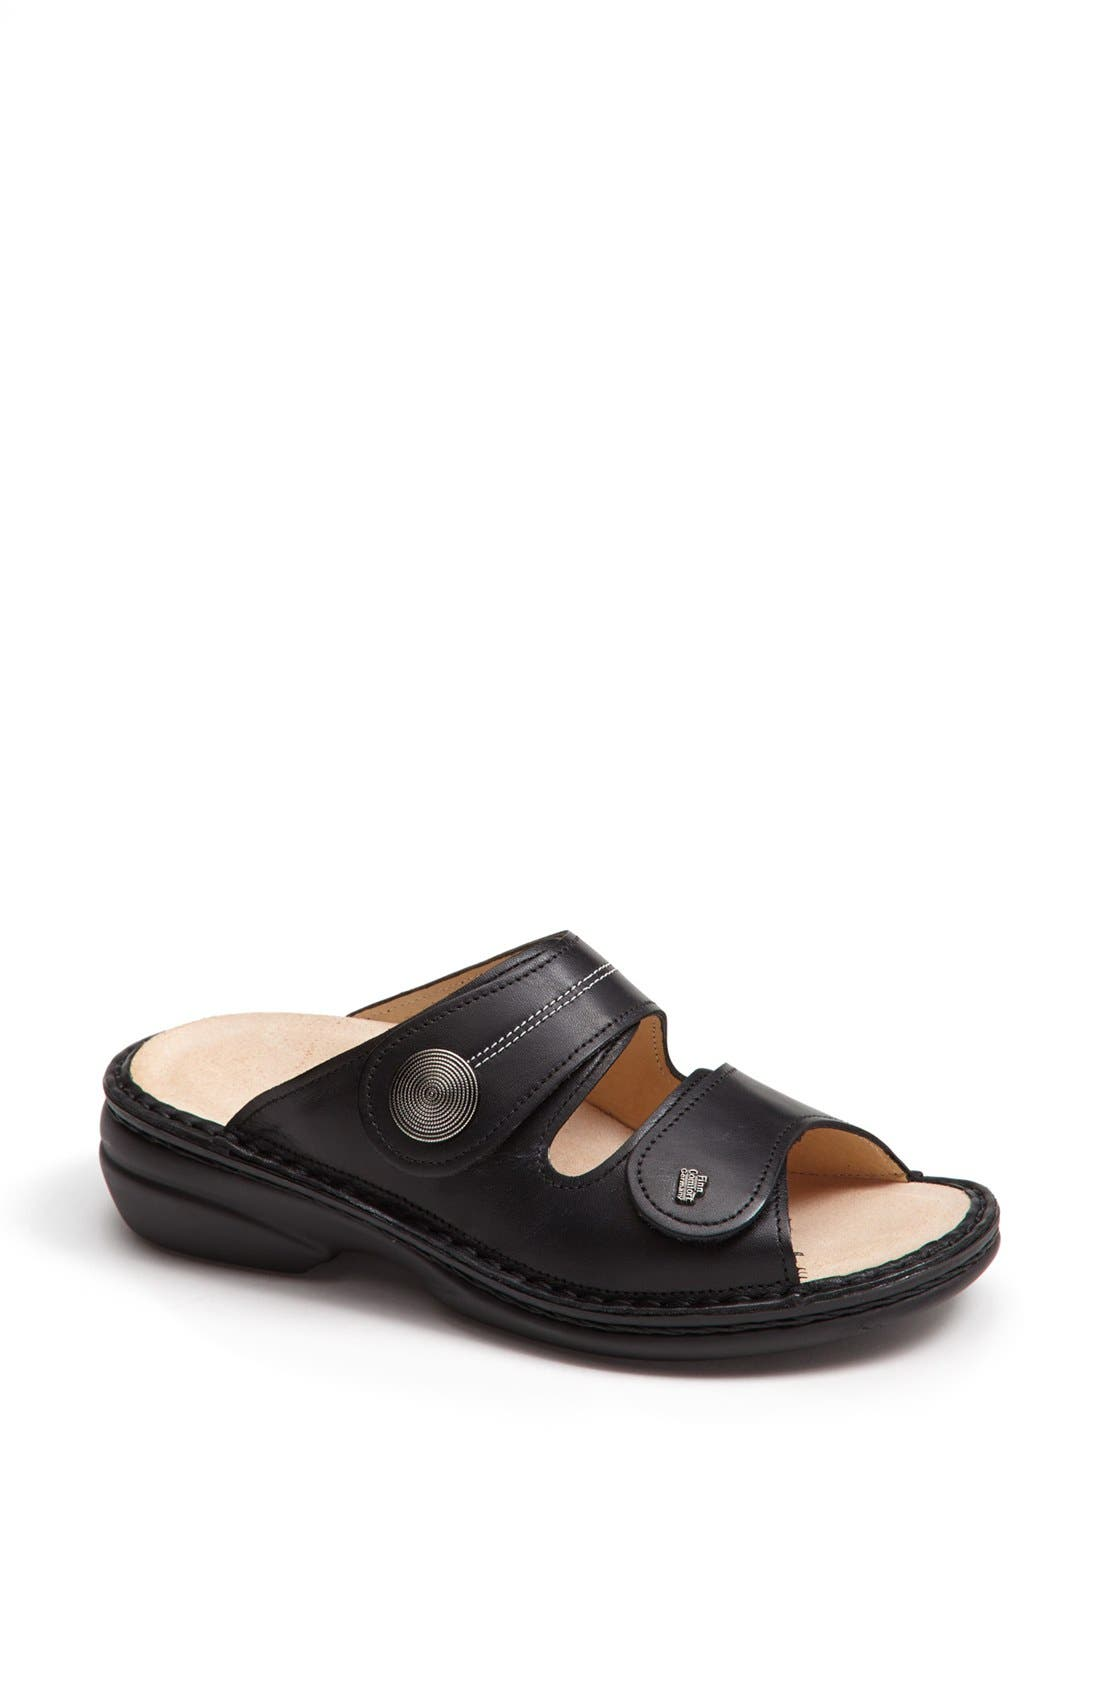 'Sansibar' Sandal,                         Main,                         color, BLACK